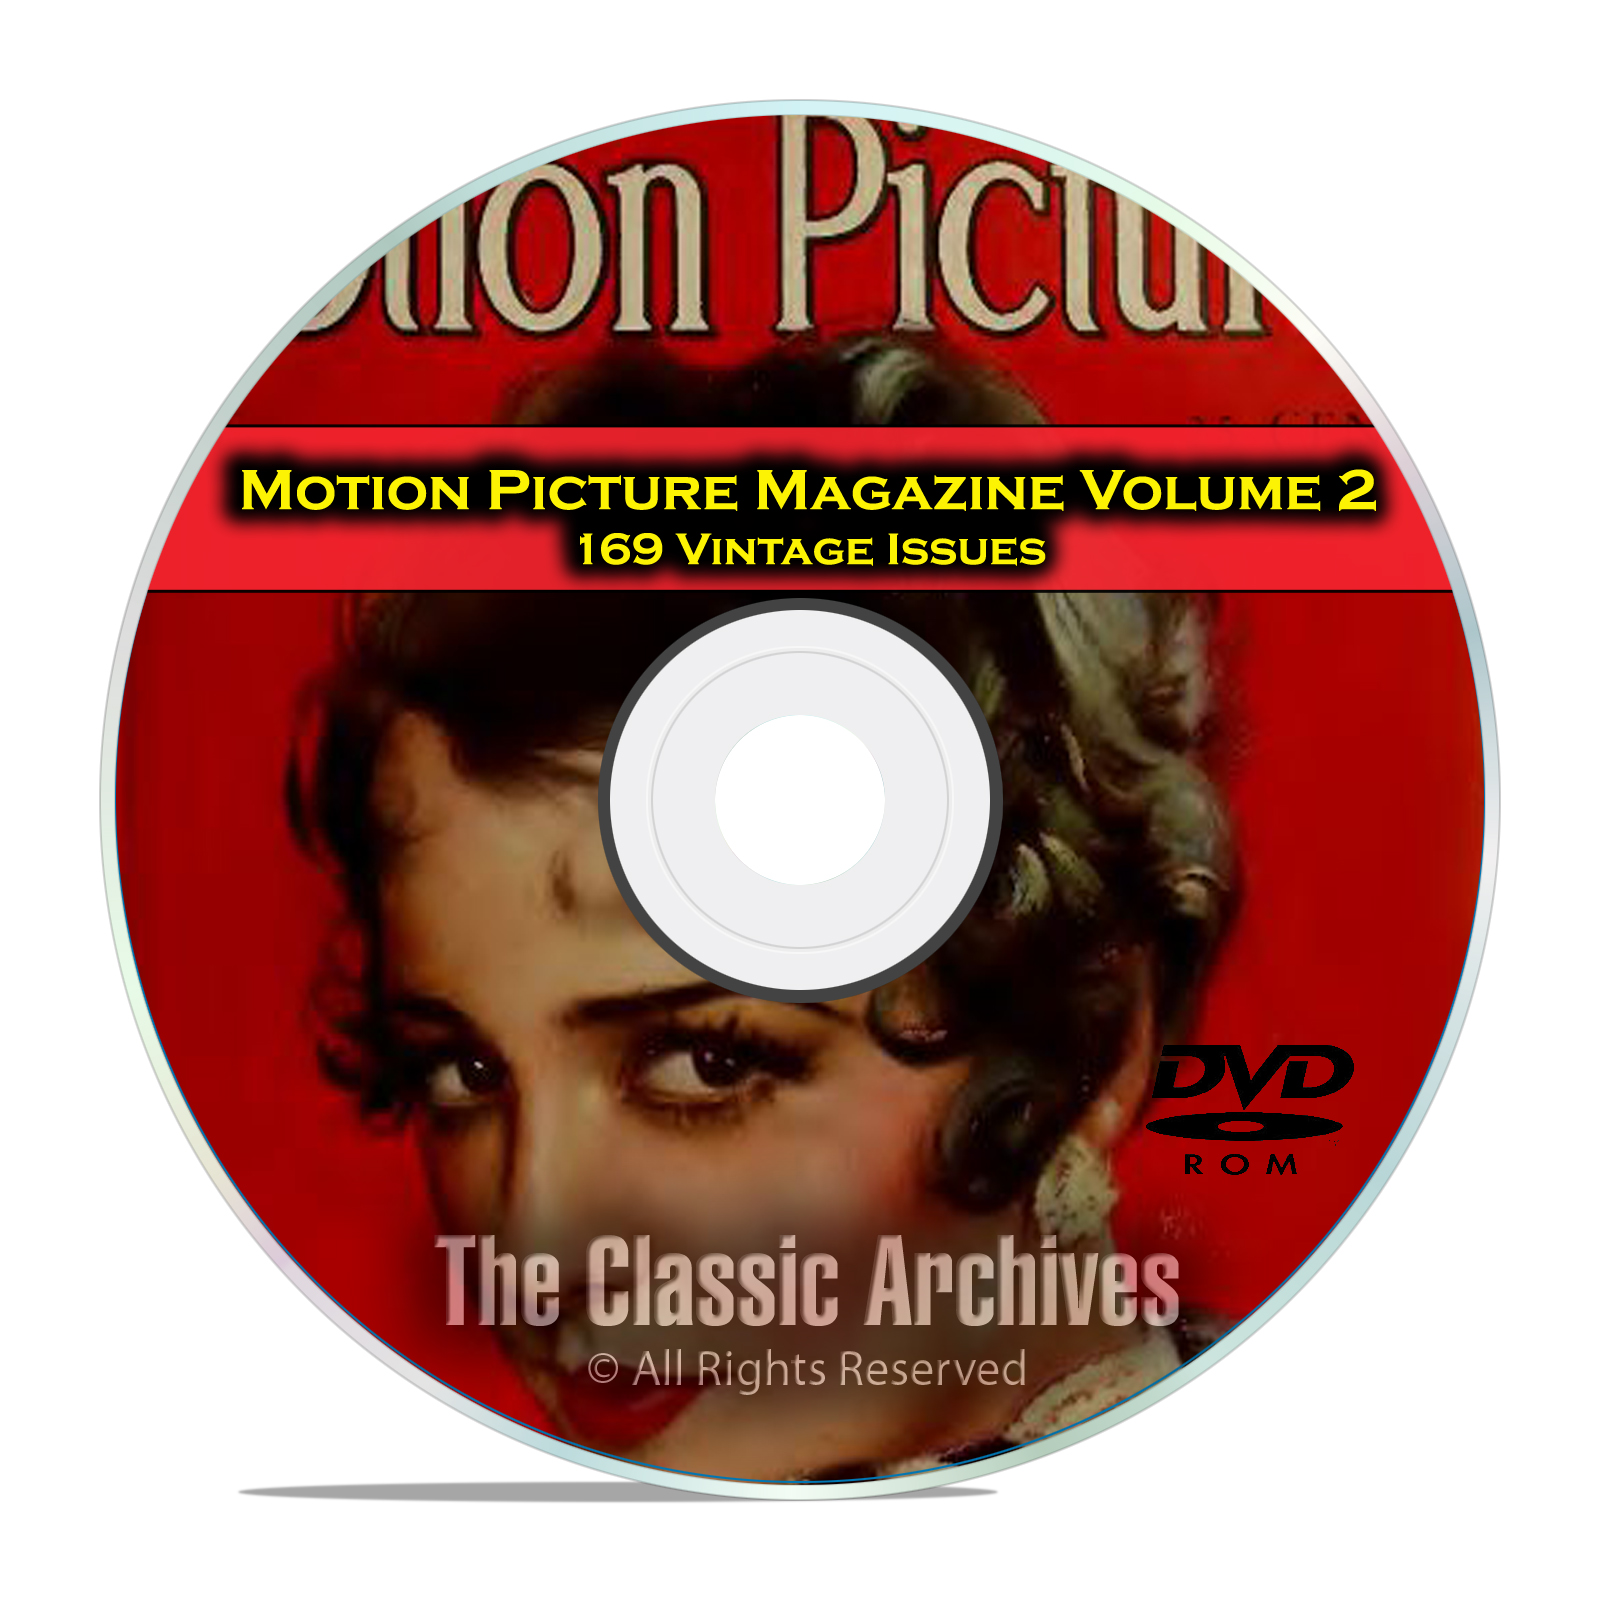 Motion Picture Movie Magazine, Volume 2, 169 Issues, 1925 - 1941, DVD